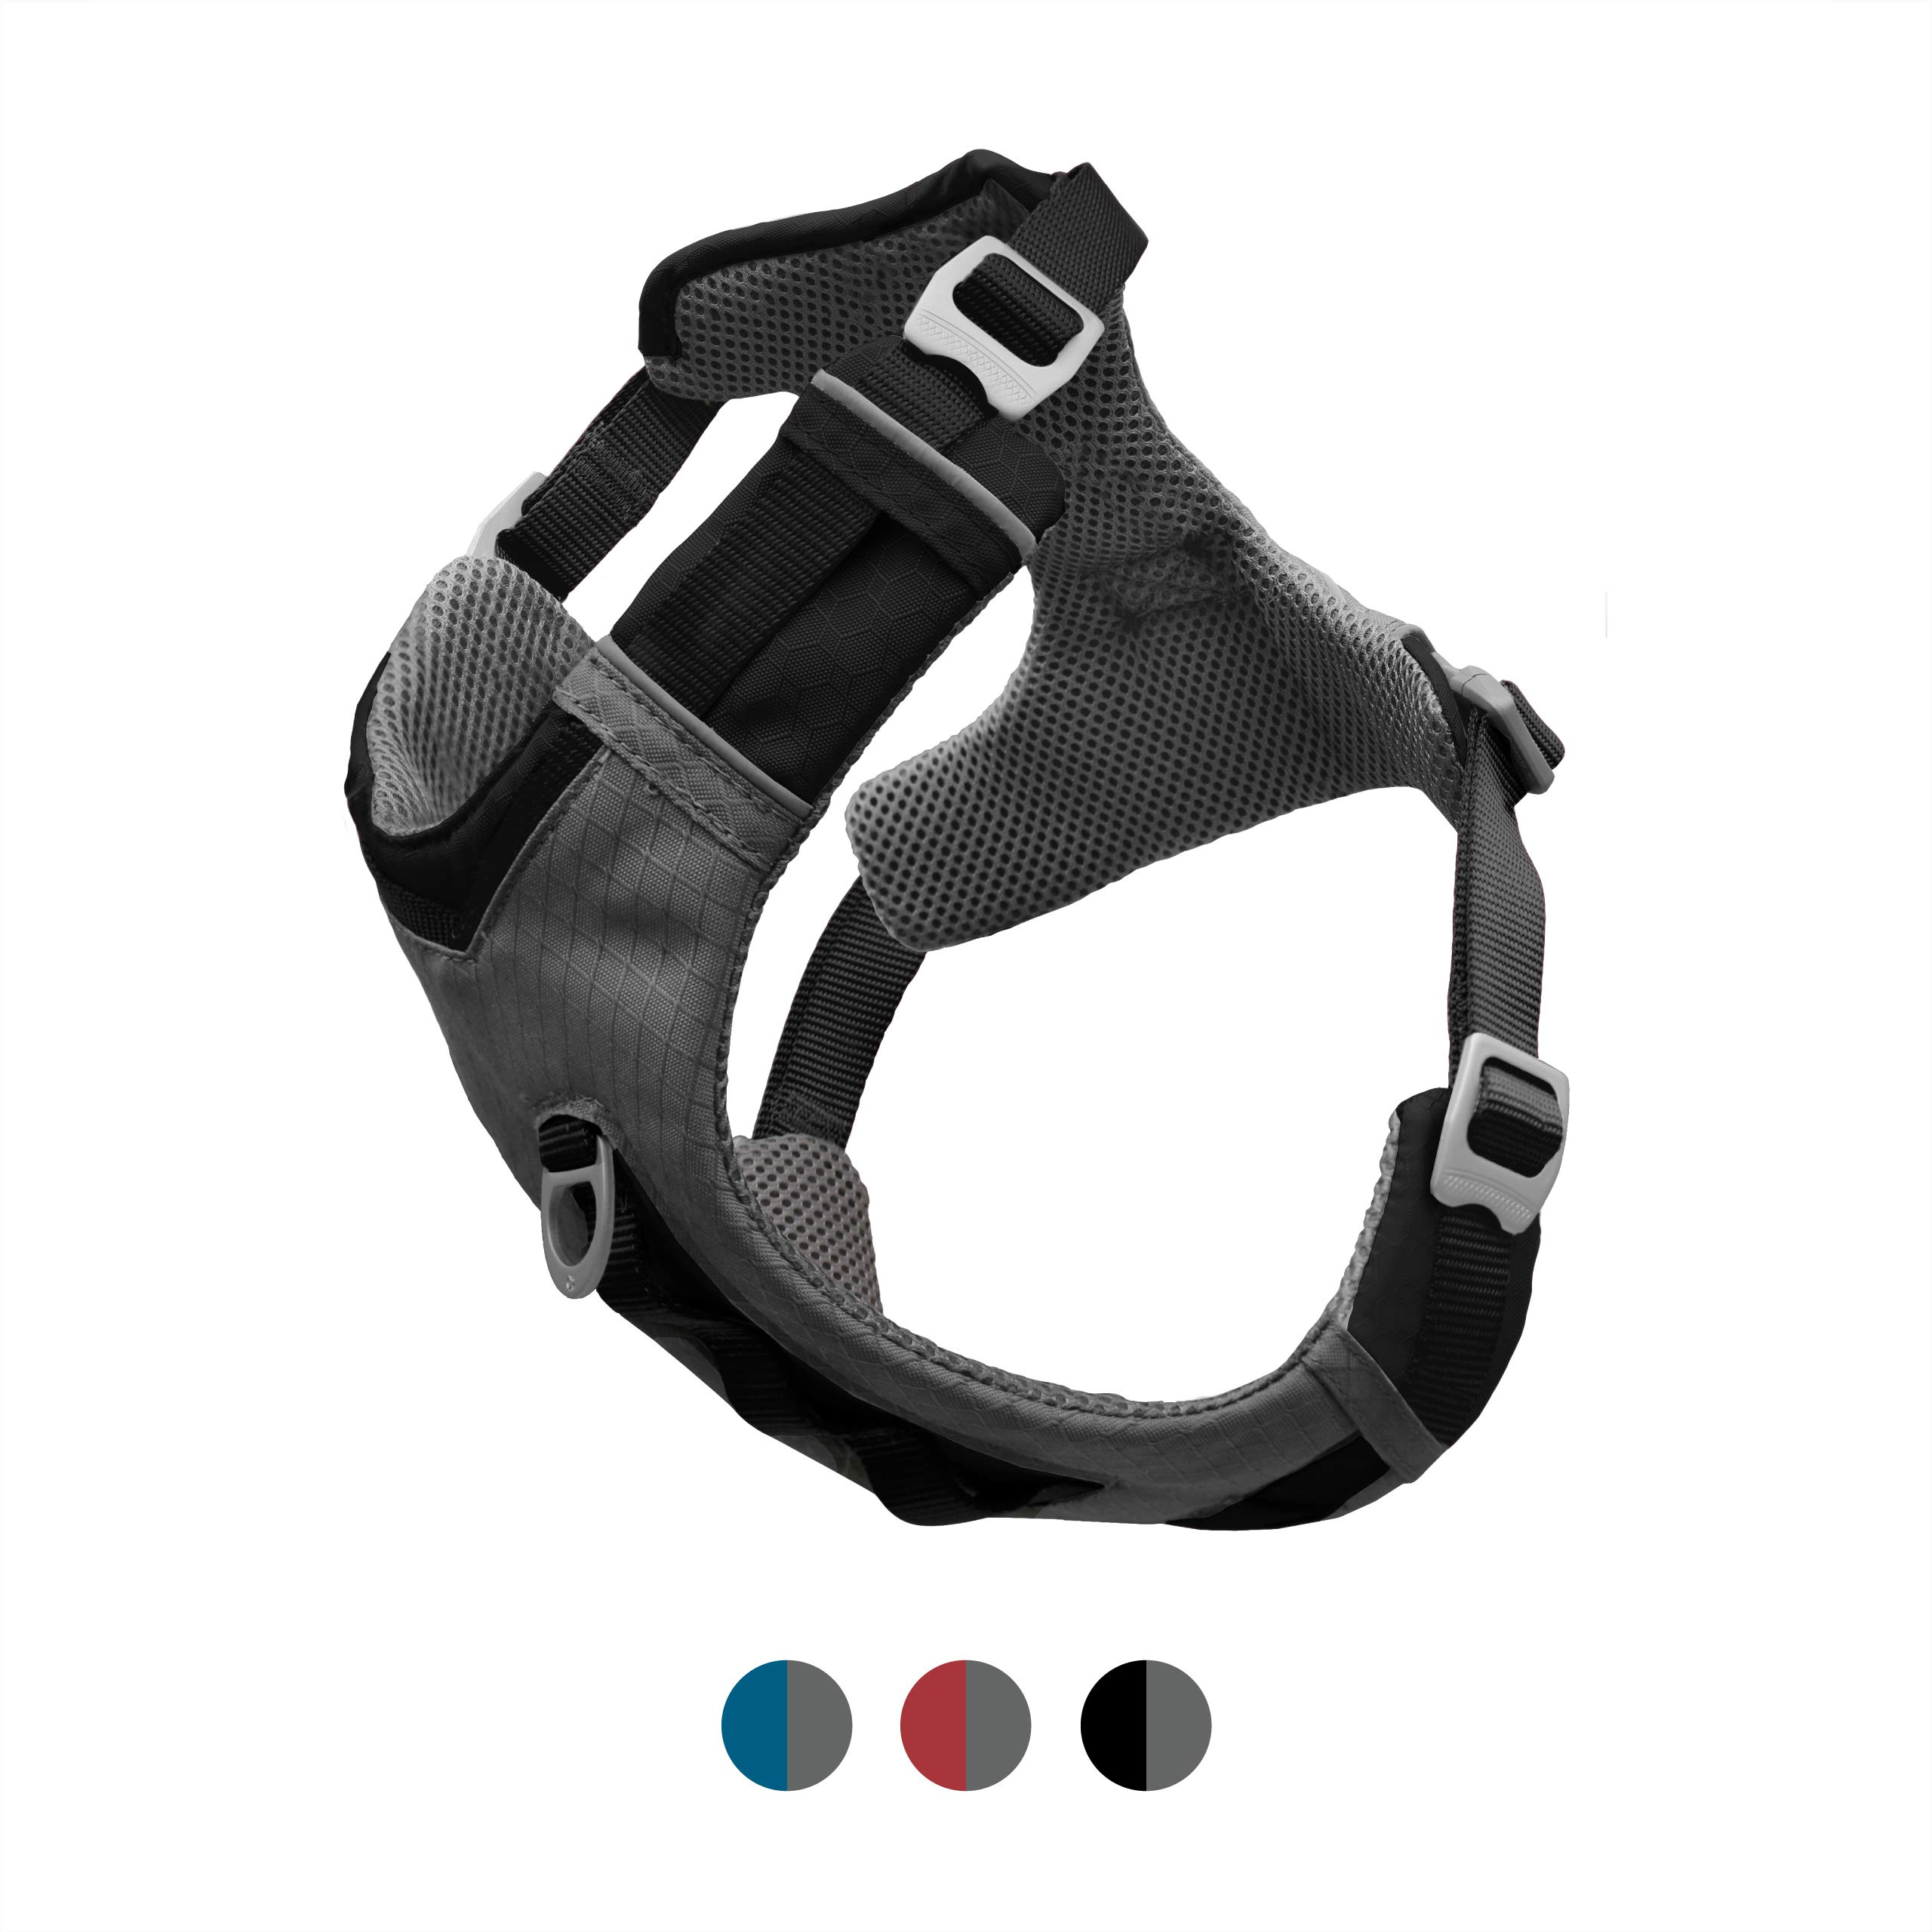 Kurgo Dog Harness for Small, Medium, Large Dogs, Reflective Harness for Running, Walking and Hiking, Journey Air Style